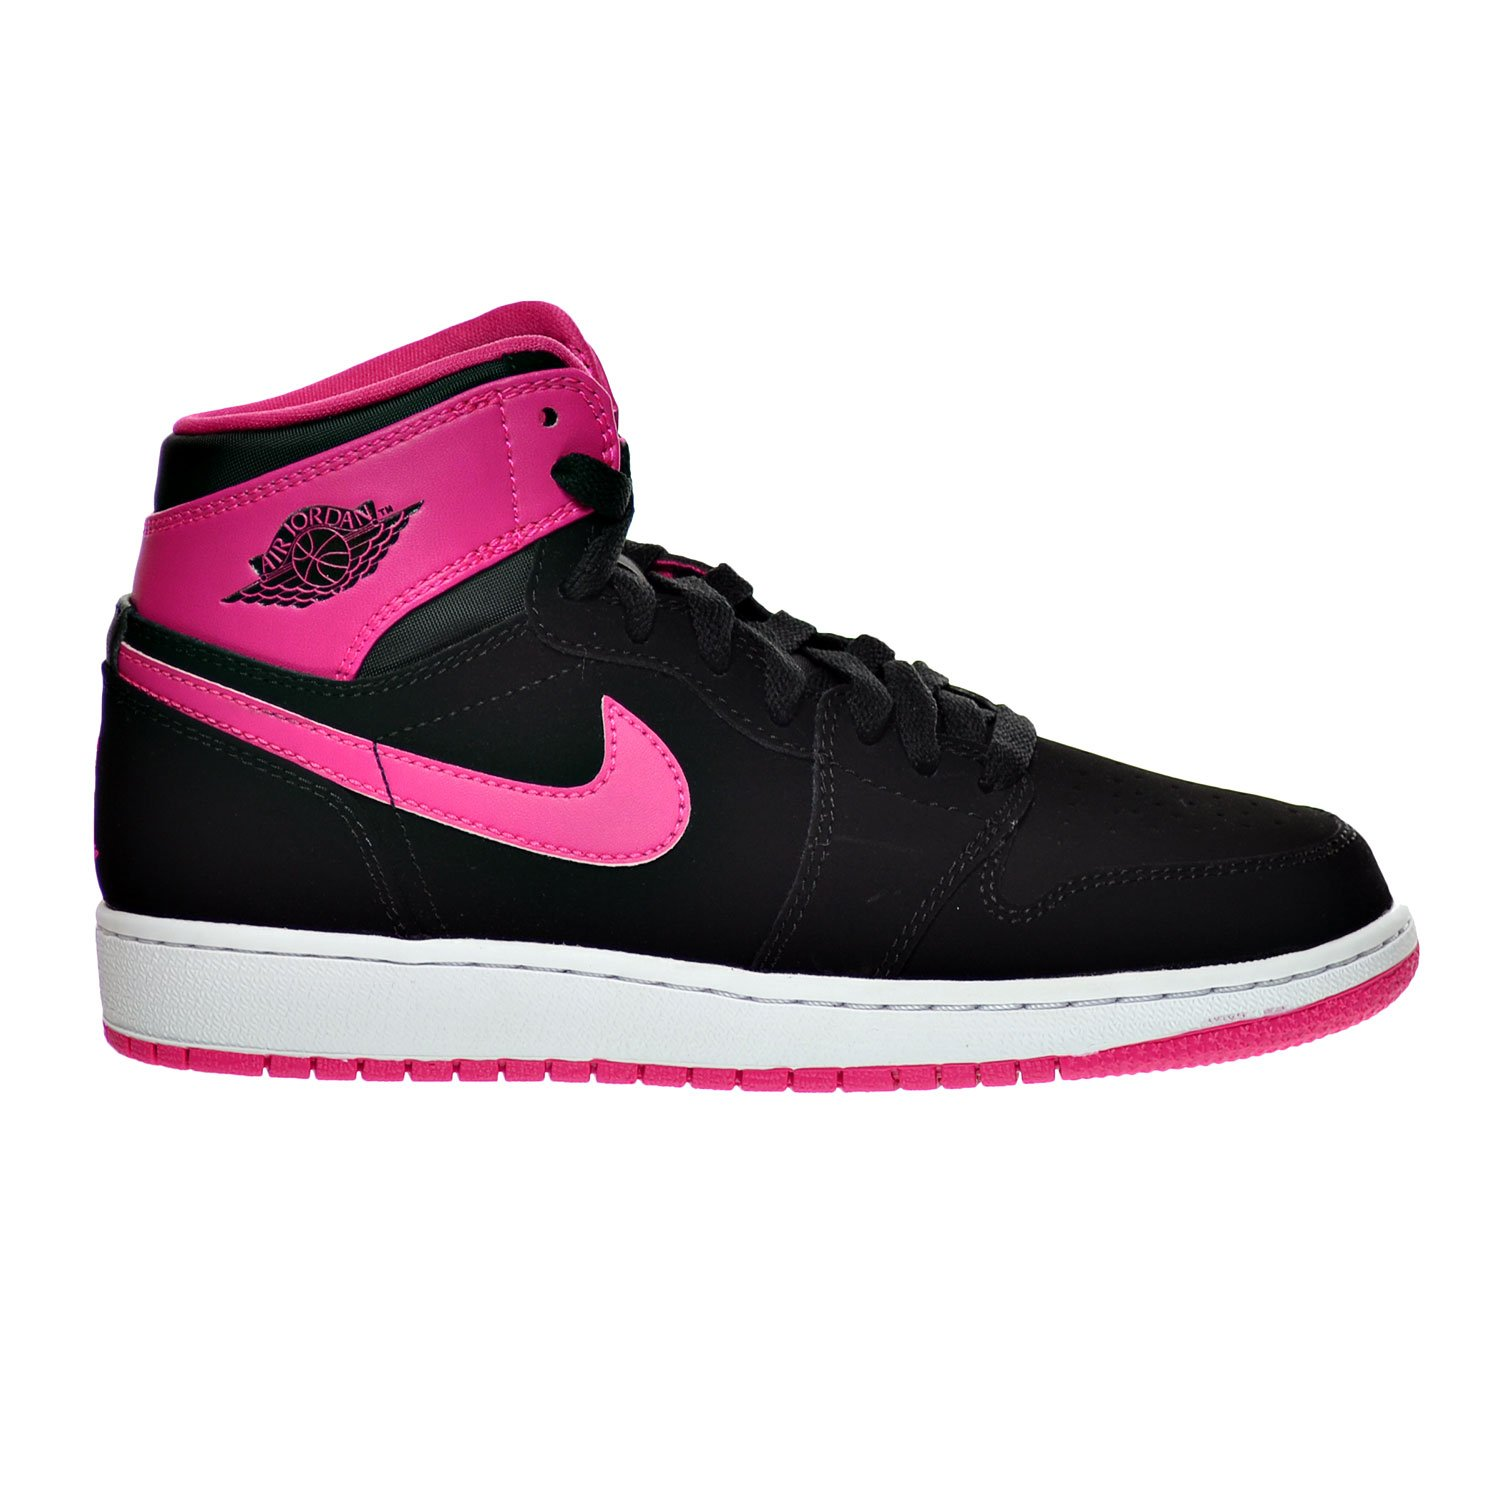 Amazon.com | Air Jordan 1 Retro High GG Big Kid's Shoes Black/Vivid  Pink/White 332148-008 | Basketball